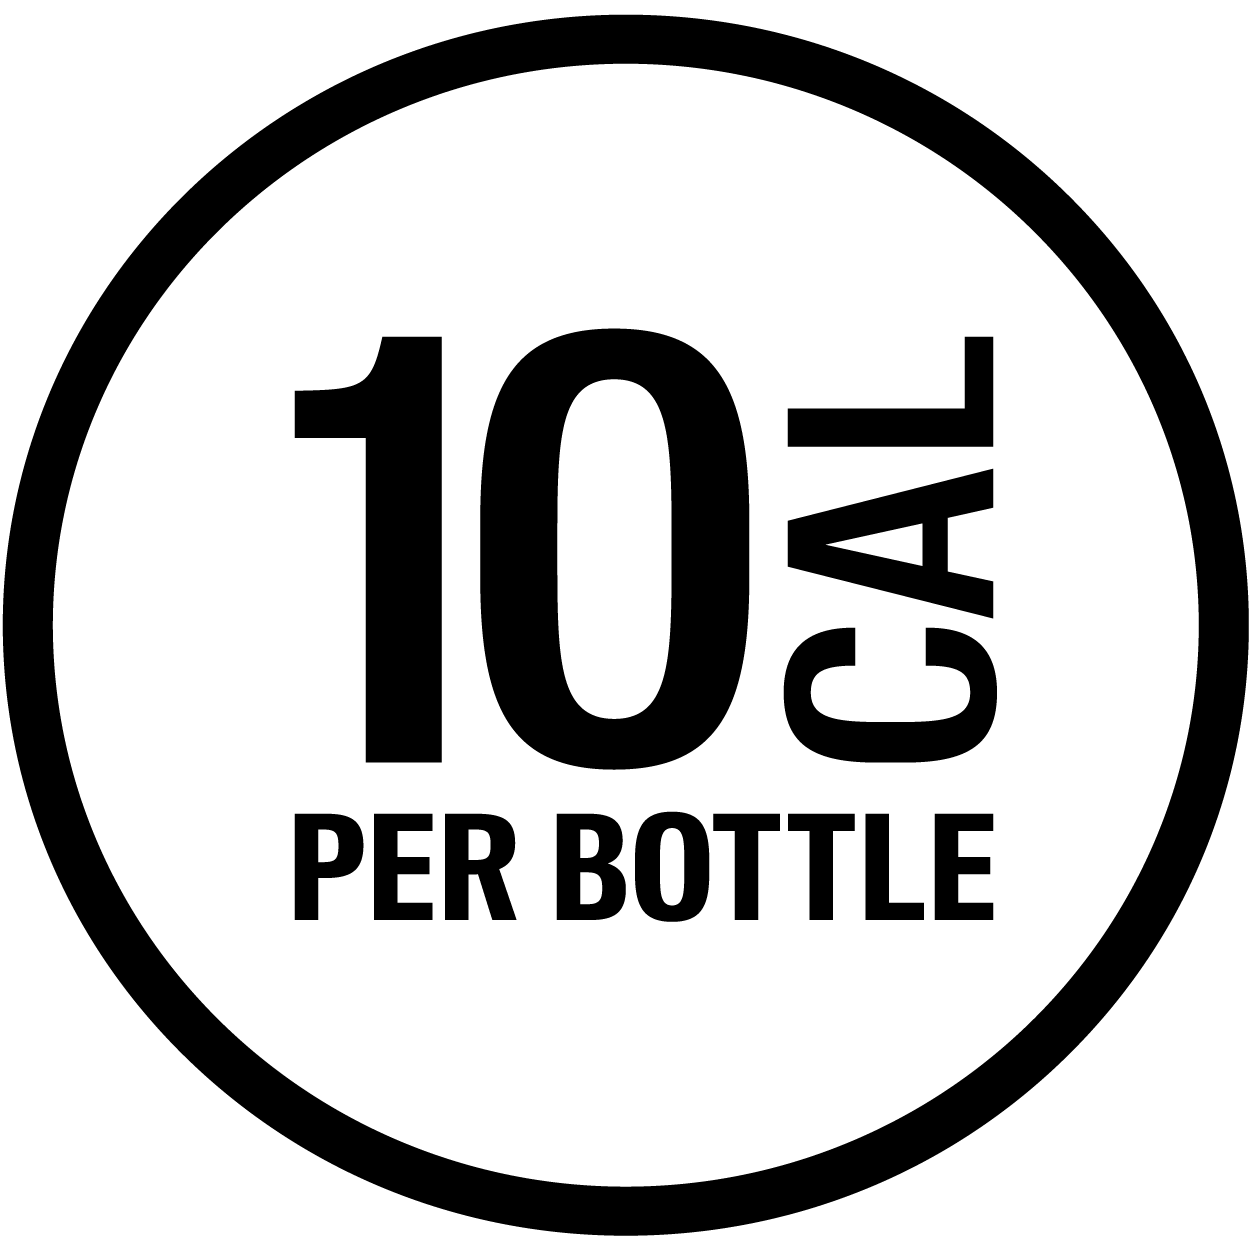 10 Calories Per Bottle icon